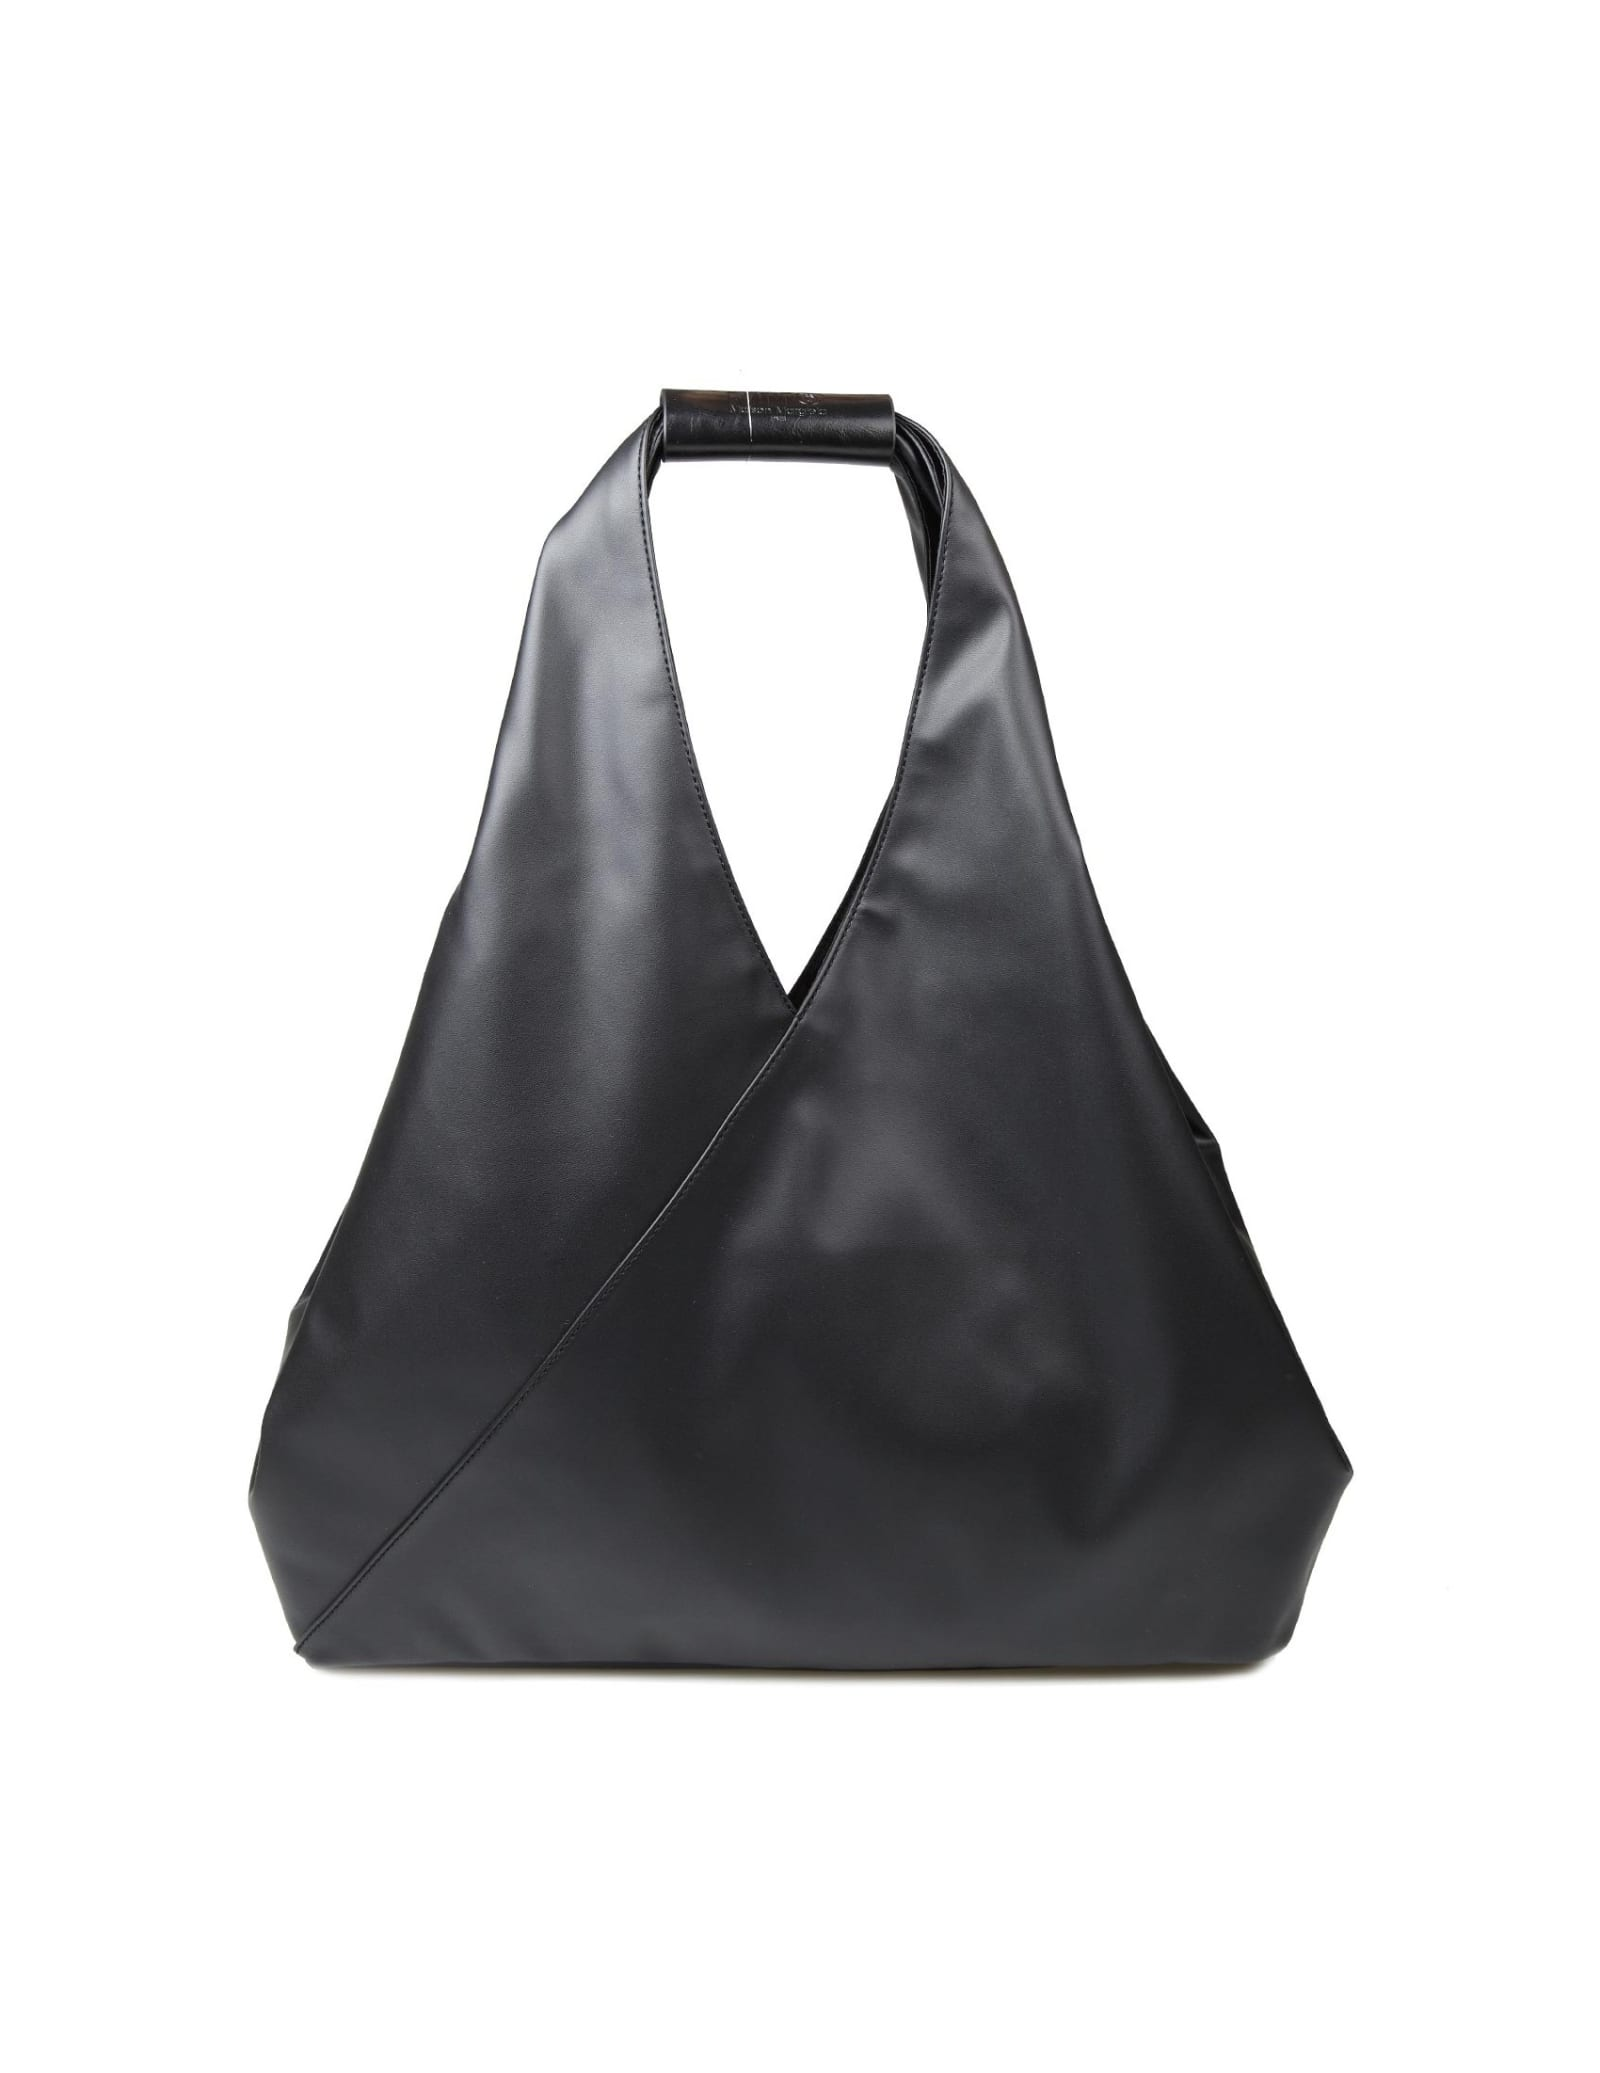 Mm6 Maison Margiela MM6 MAISON MARGIELA SHOPPING BAG COLOR BLACK